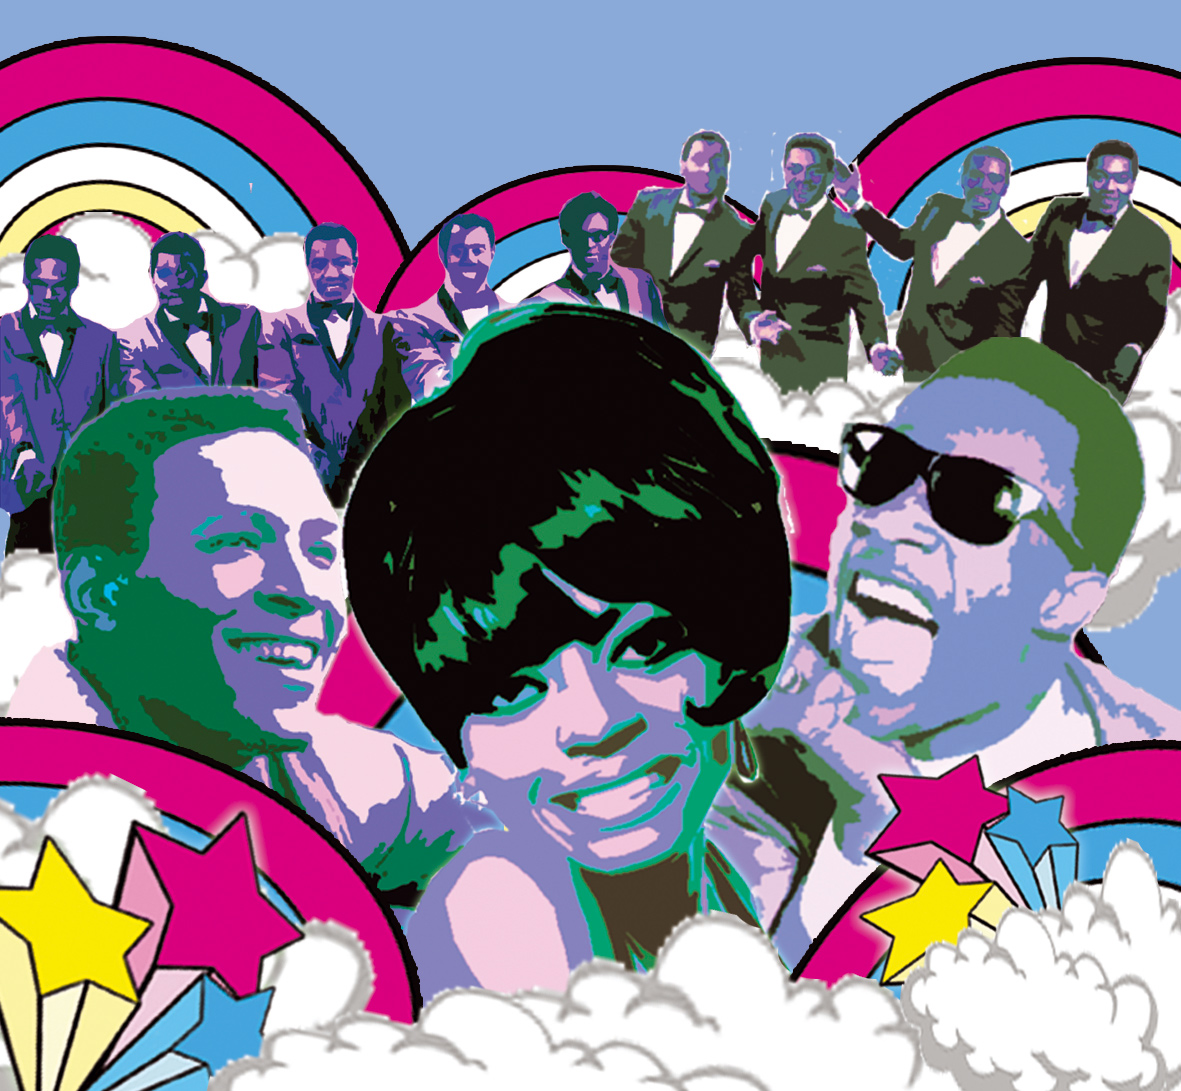 Disco clipart motown Motown Funk Museum Of The